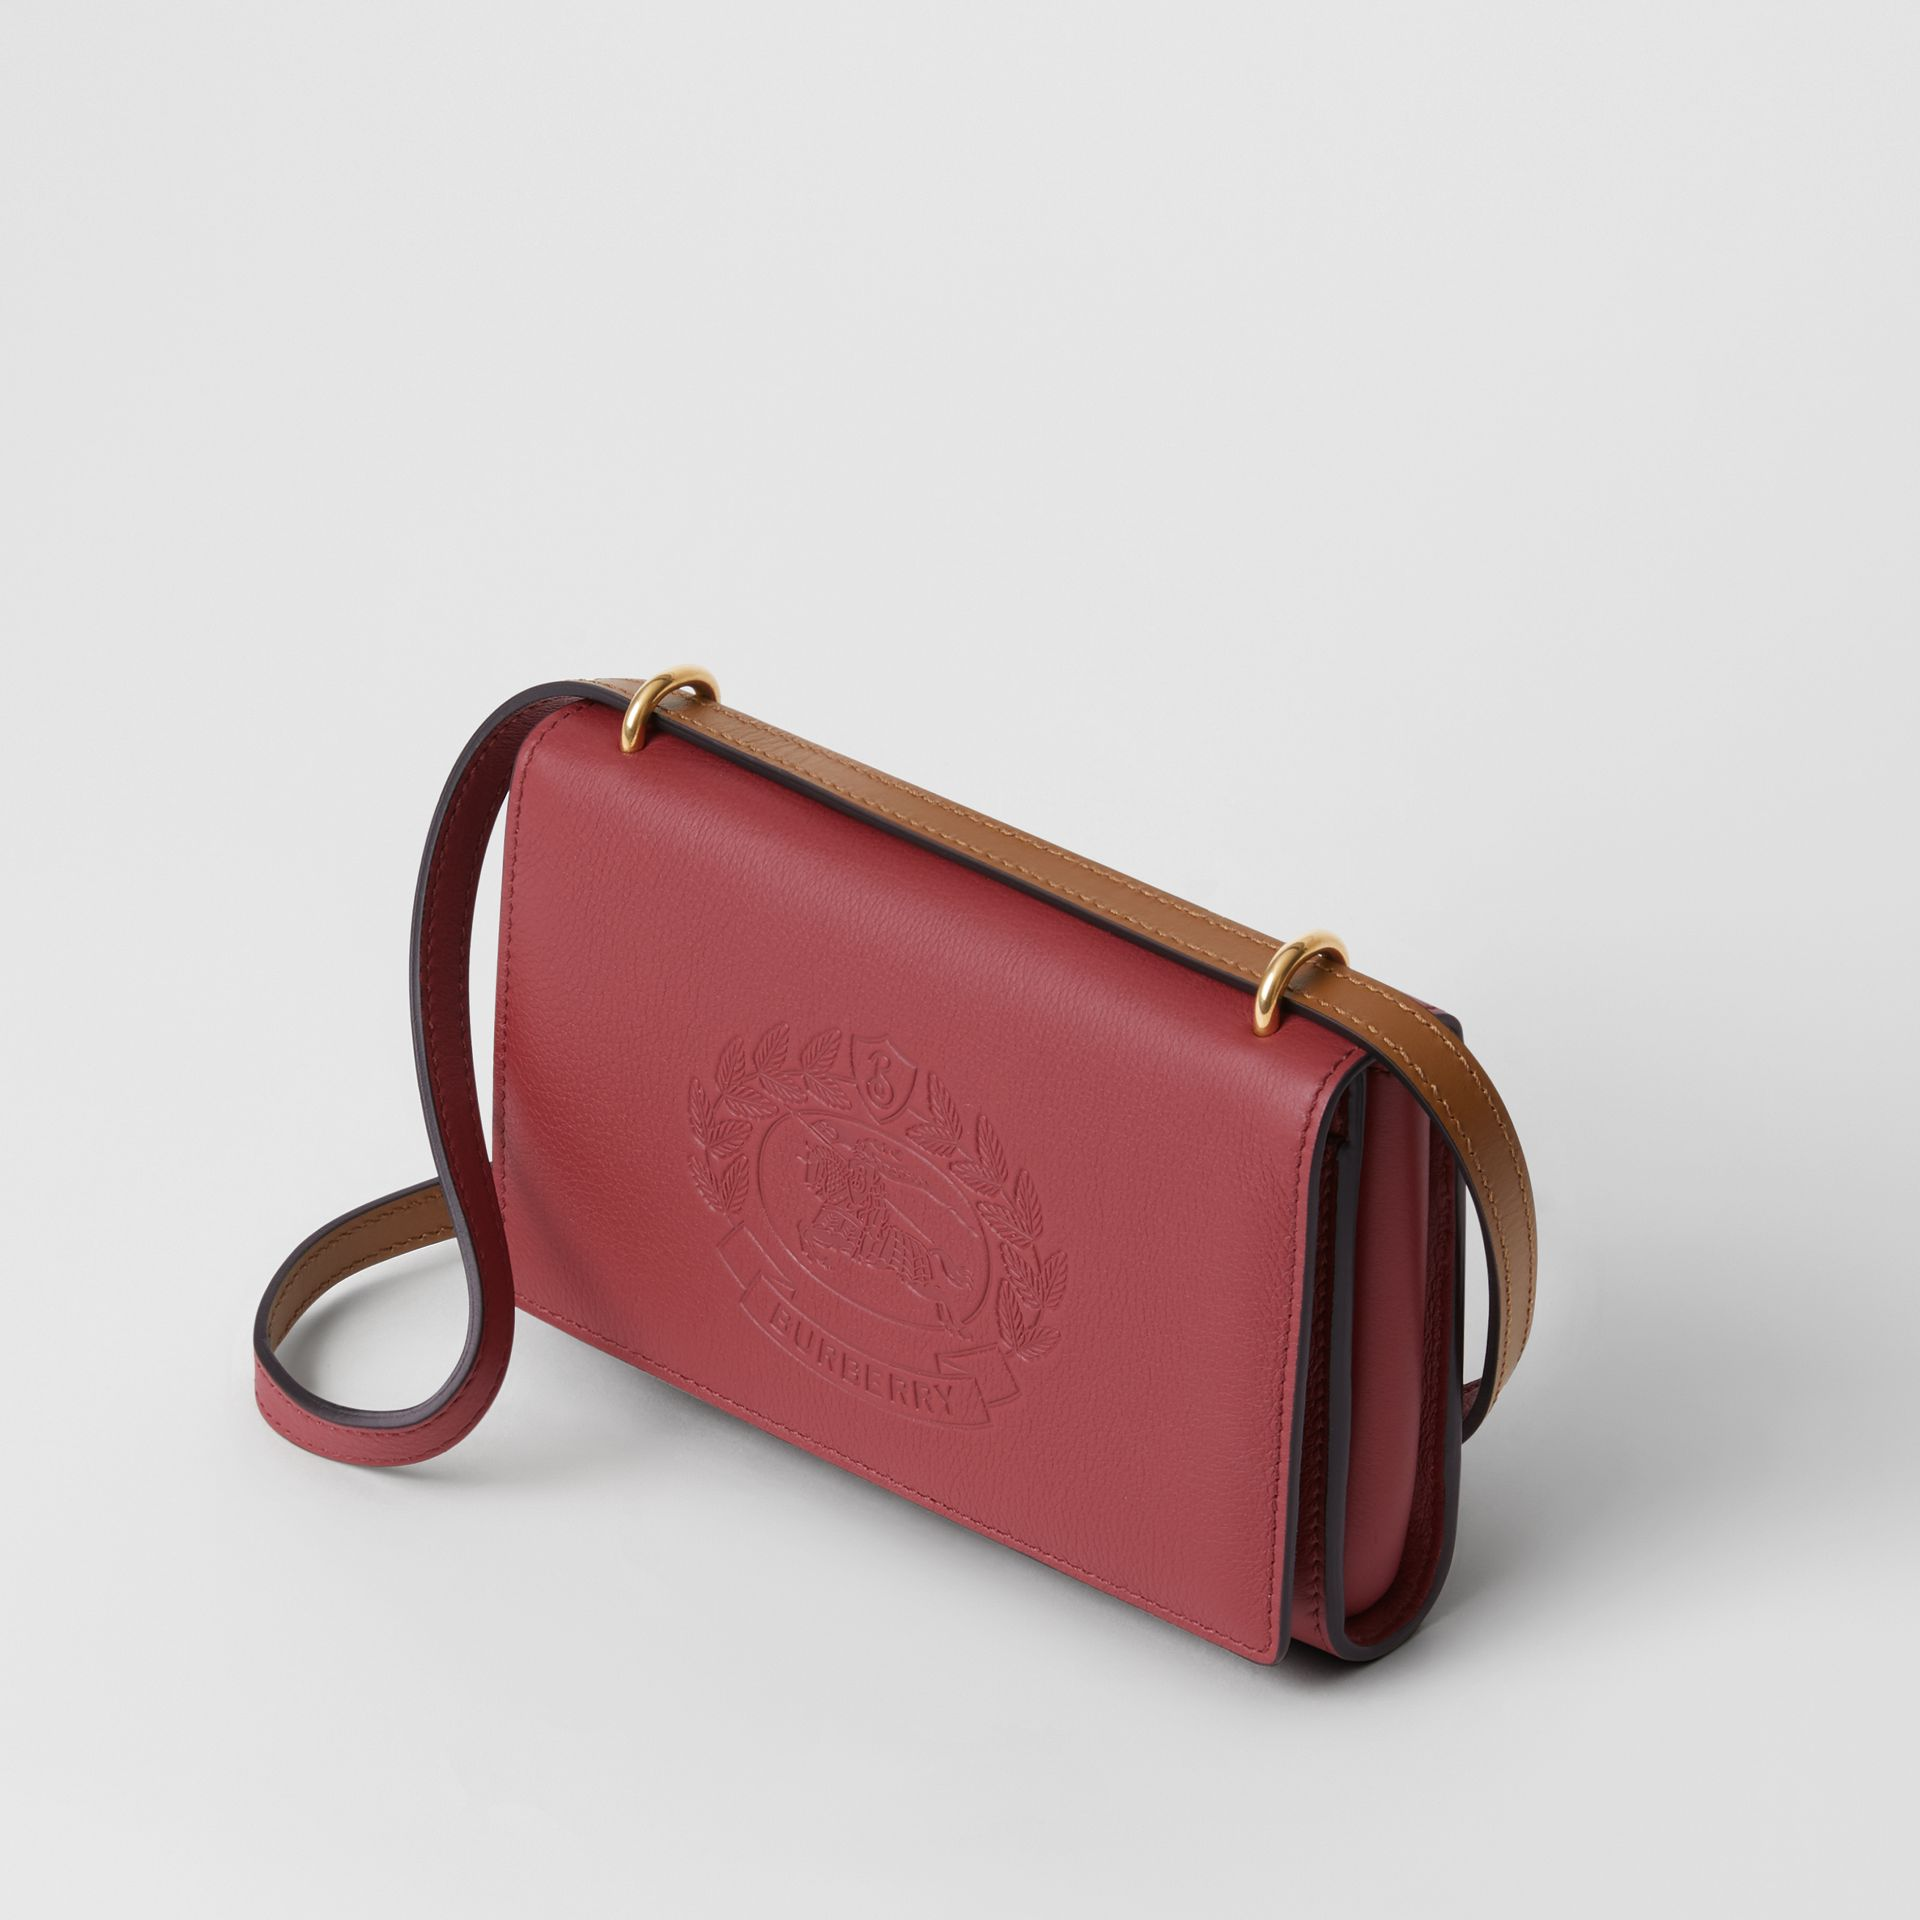 Embossed Crest Leather Wallet with Detachable Strap in Crimson - Women | Burberry Canada - gallery image 4